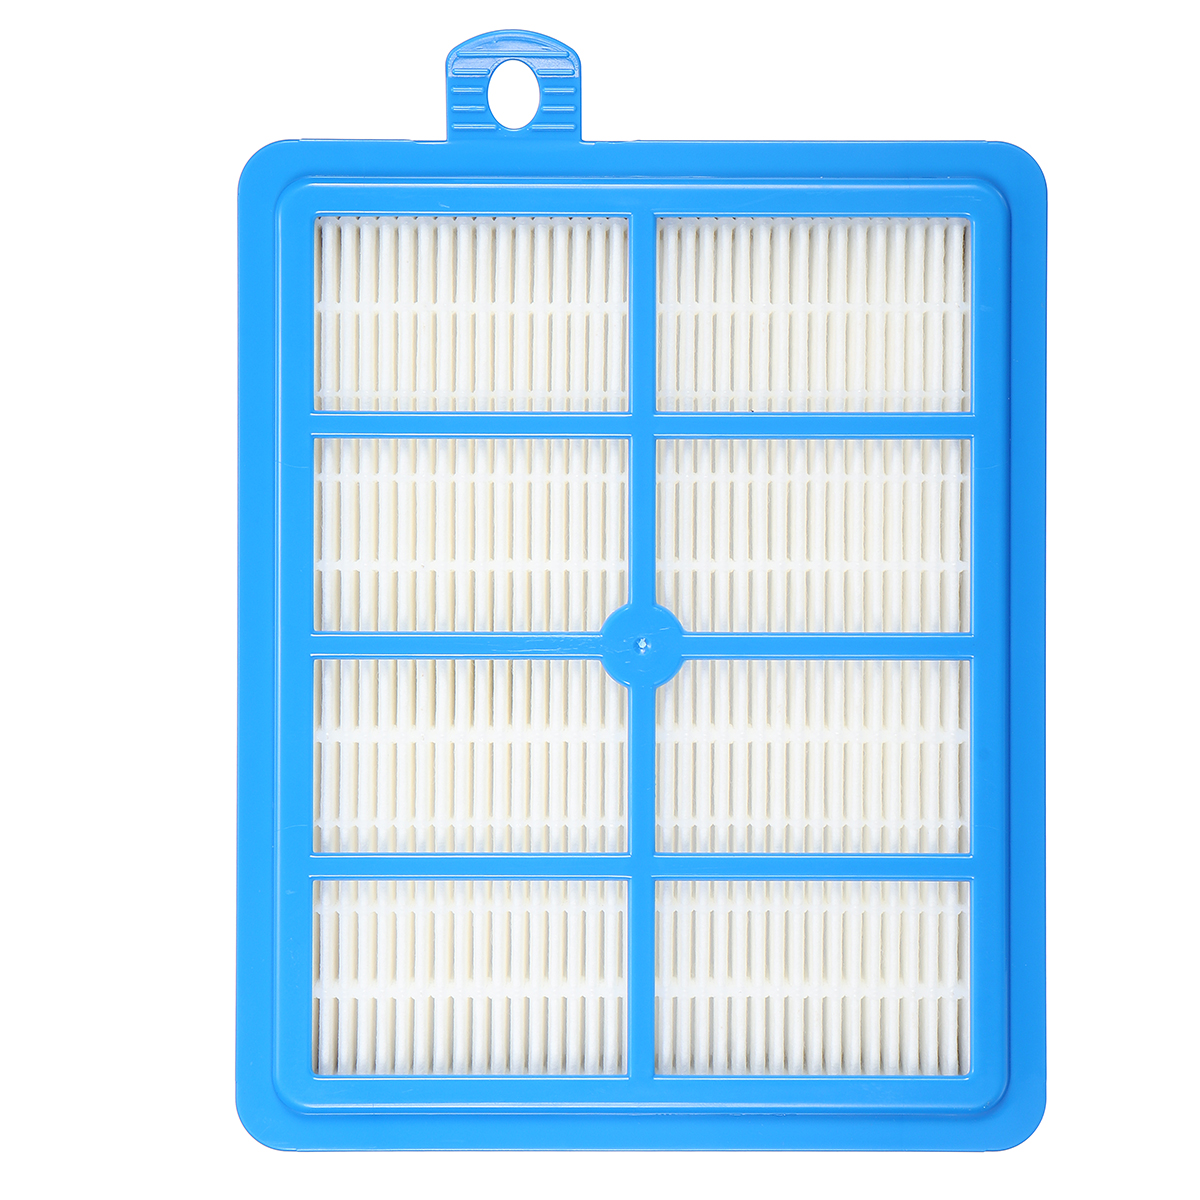 Hepa Filter Accessory For ELECTROLUX H13 Vacuum Cleaner